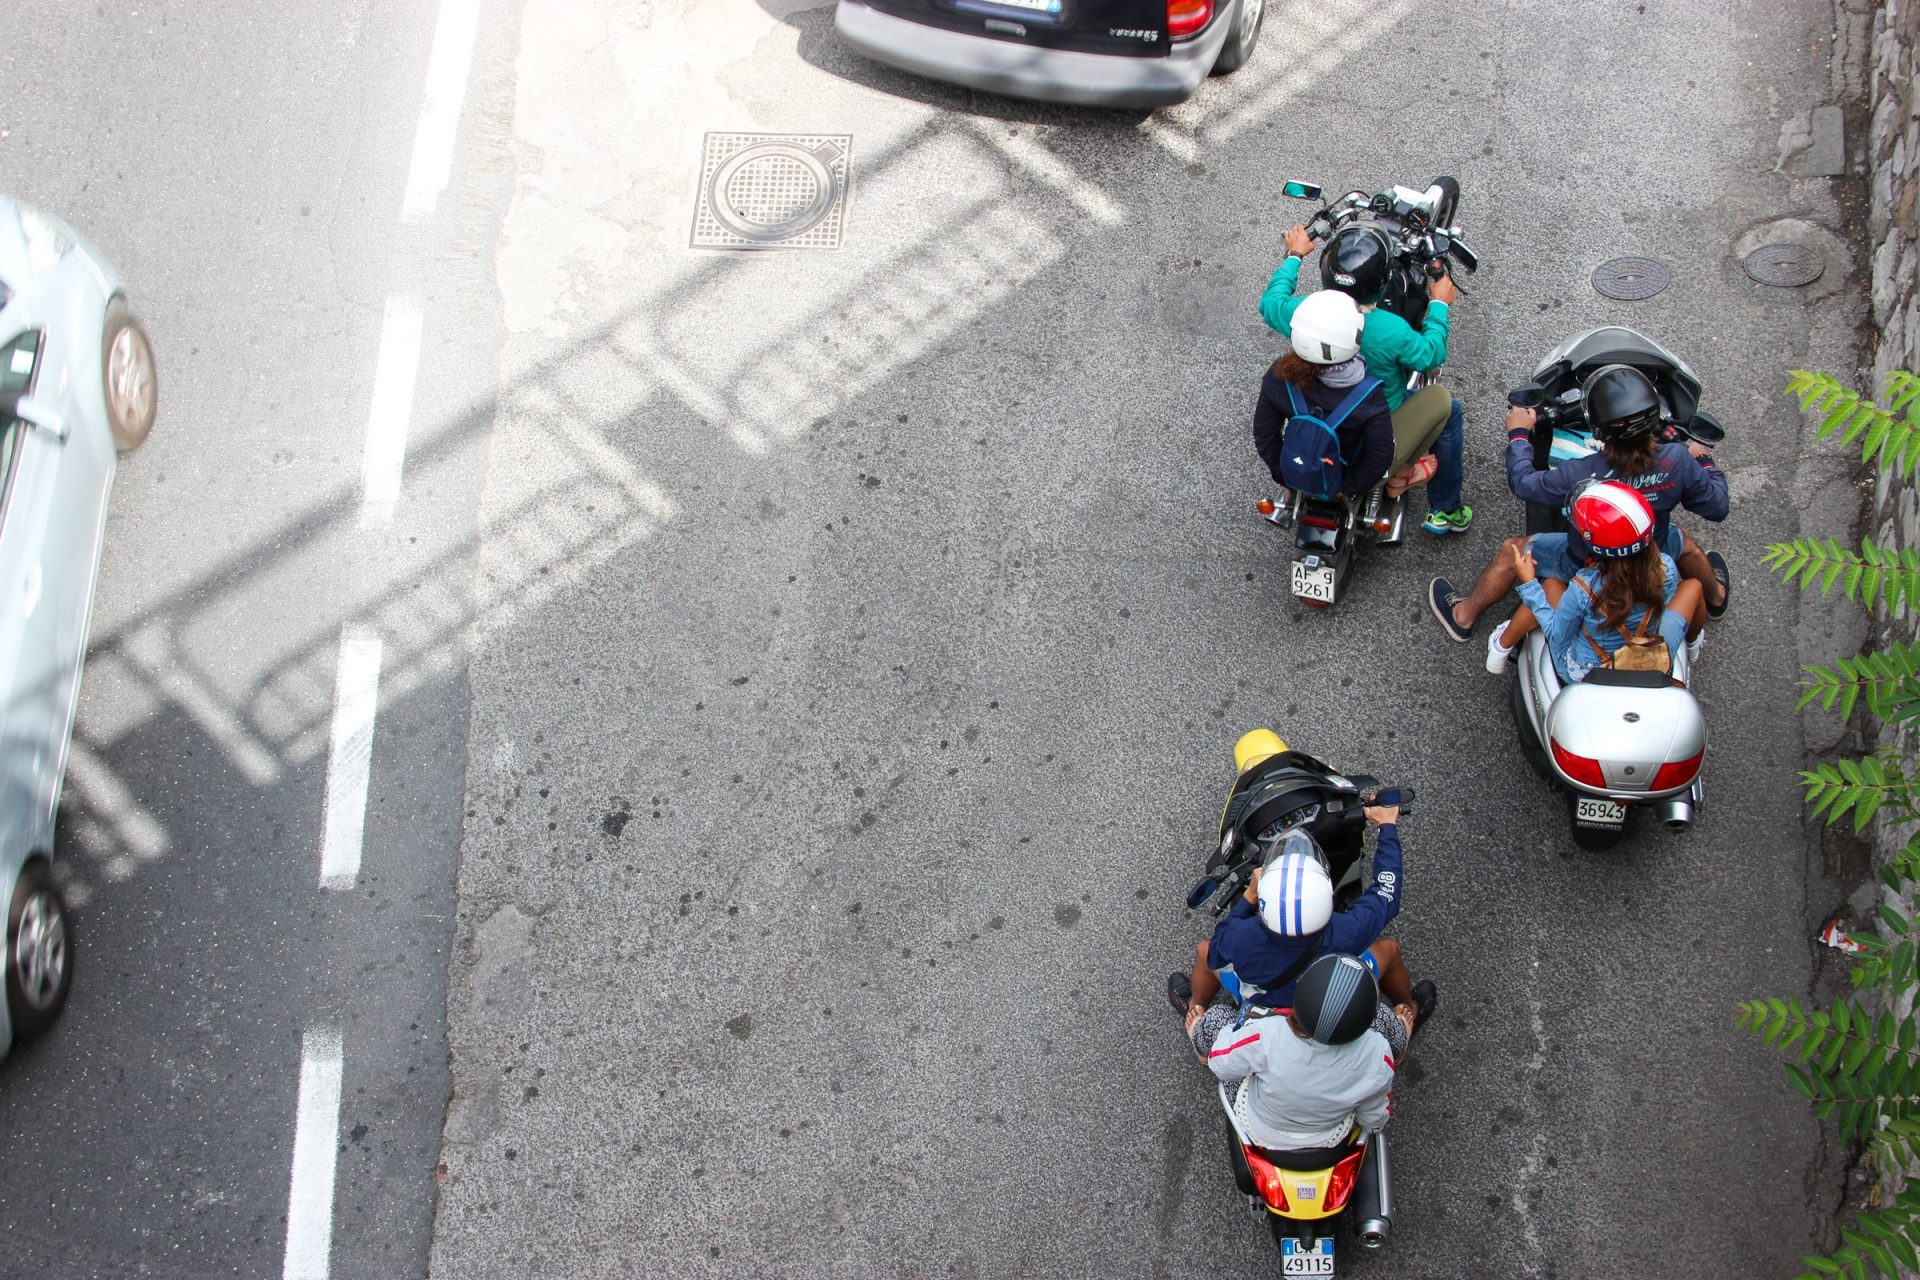 People On Motorcycles Beside Road